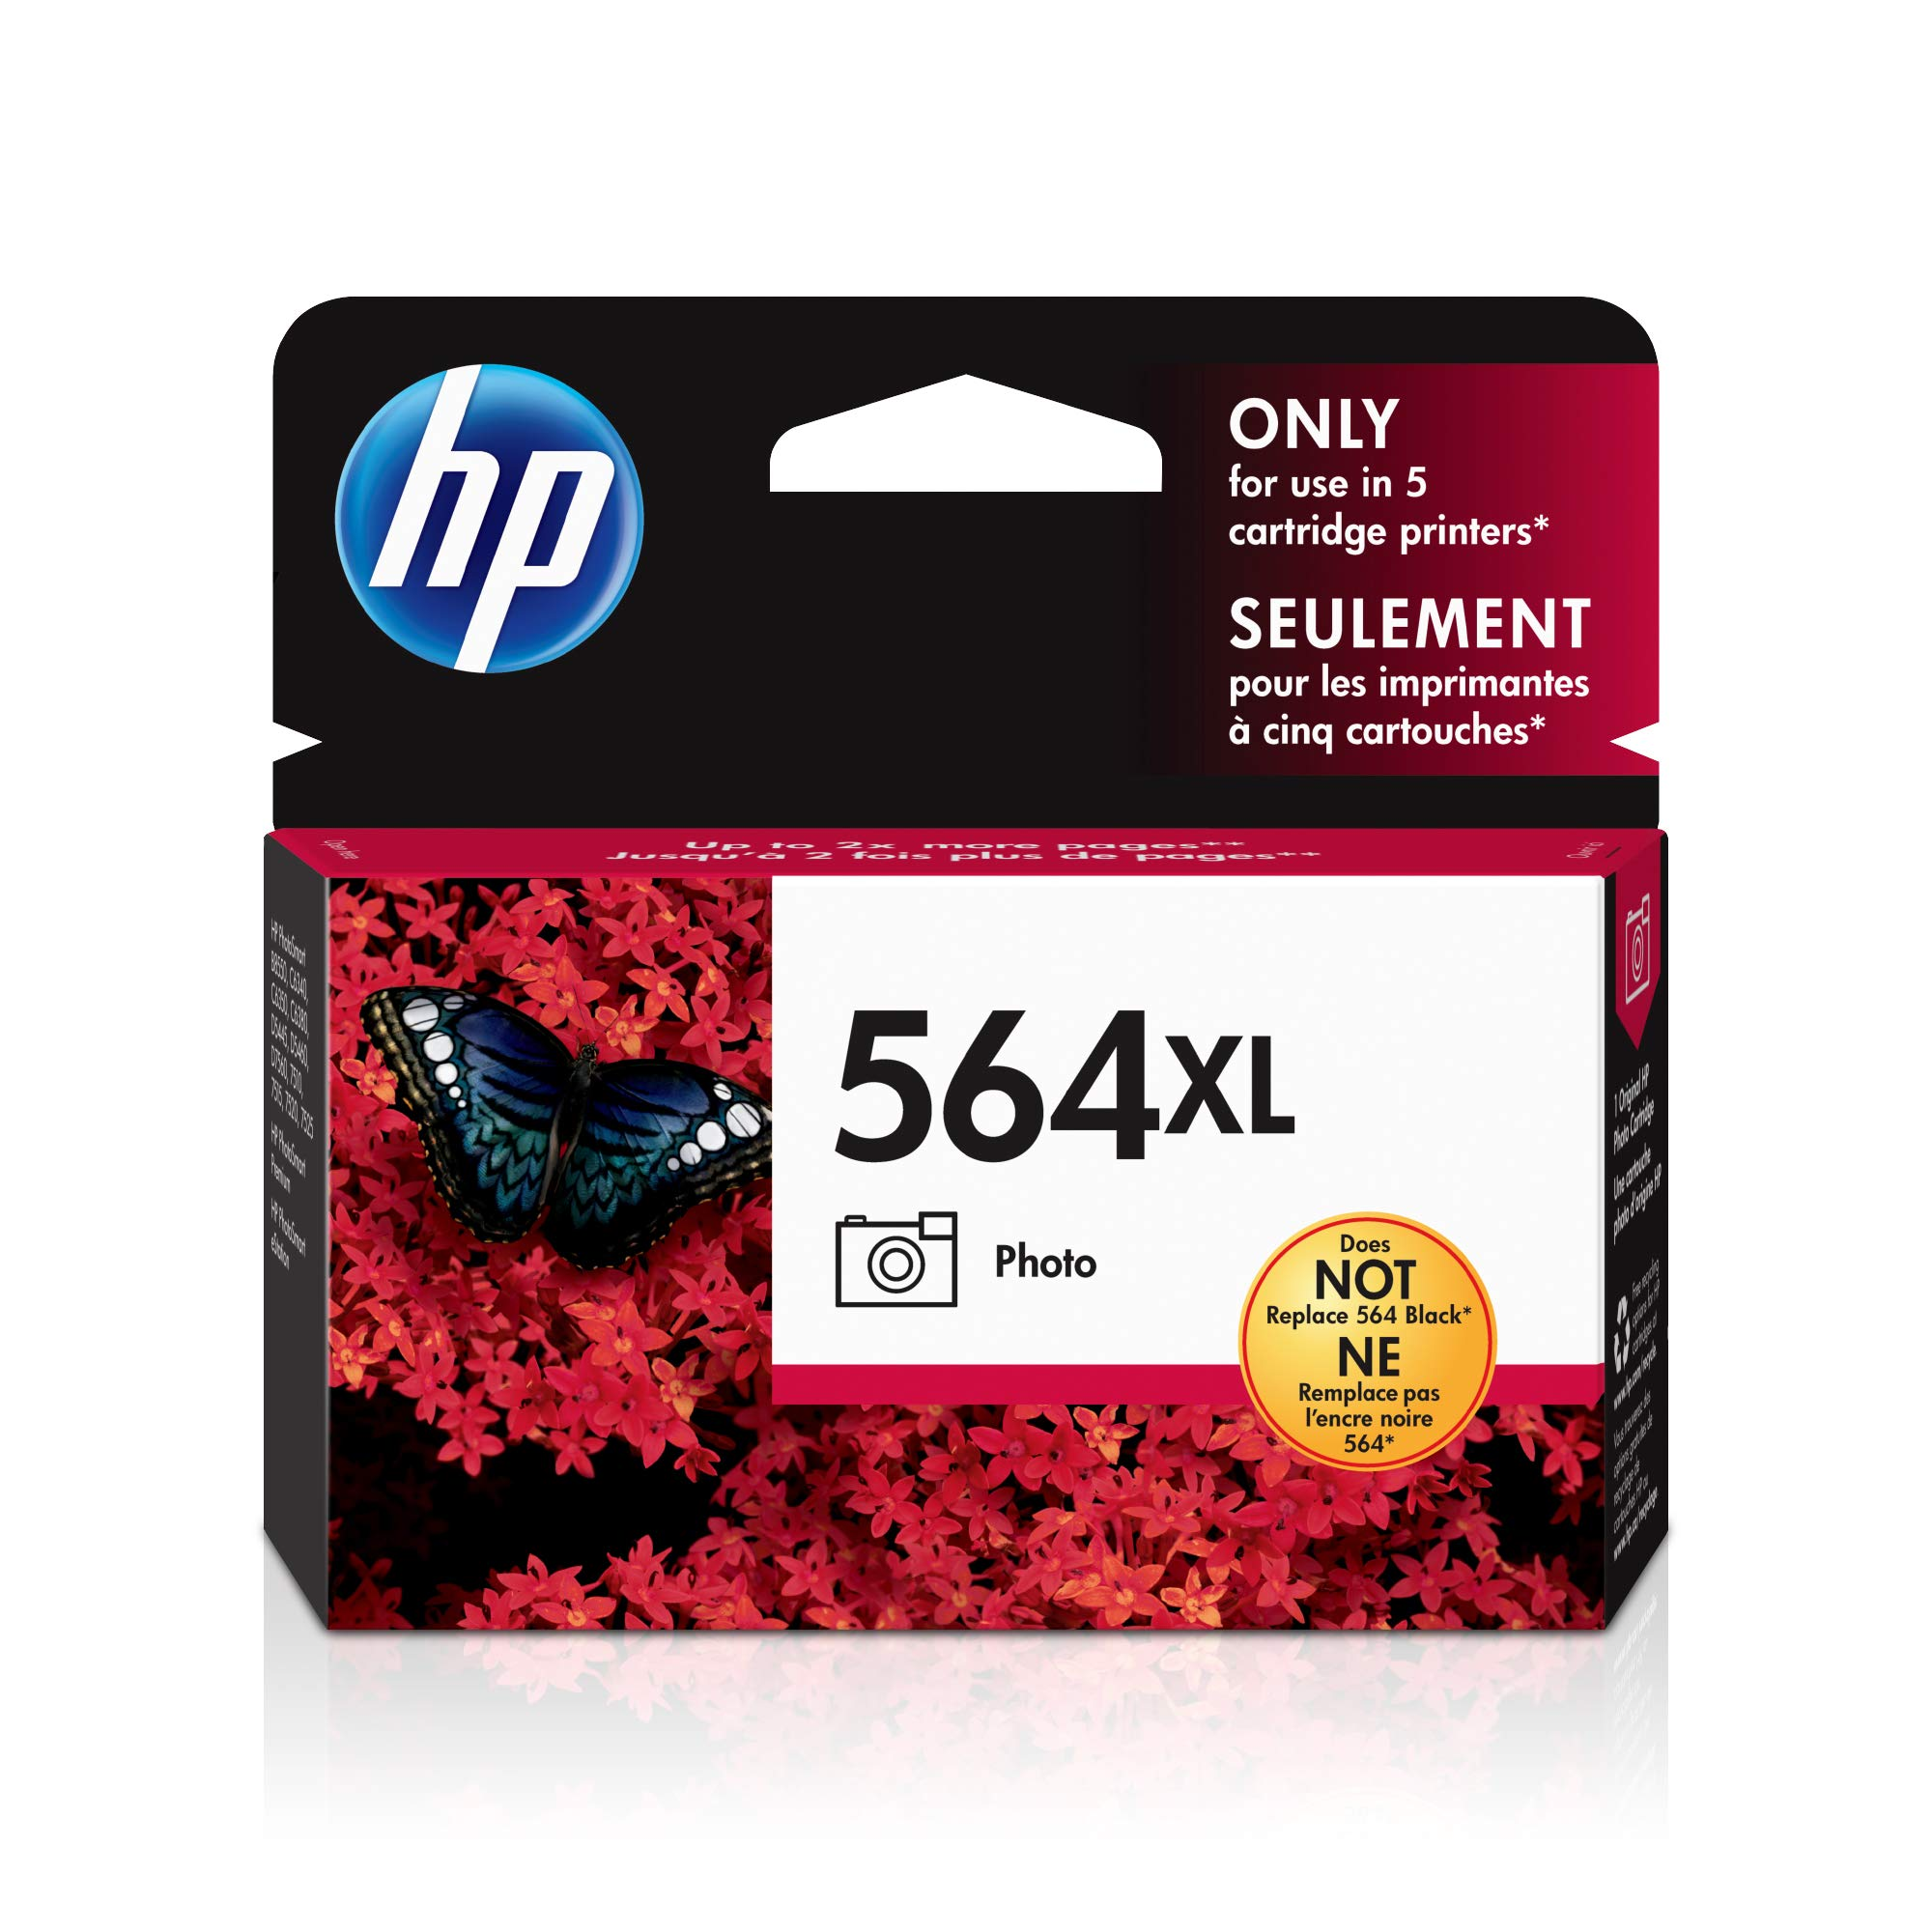 HP 564XL | Ink Cartridge | Photo | Works with HP Photosmart 7500 Series, C6300 Series, C510a, C309g, C310a, C410a, C309n, C311a | CB322WN